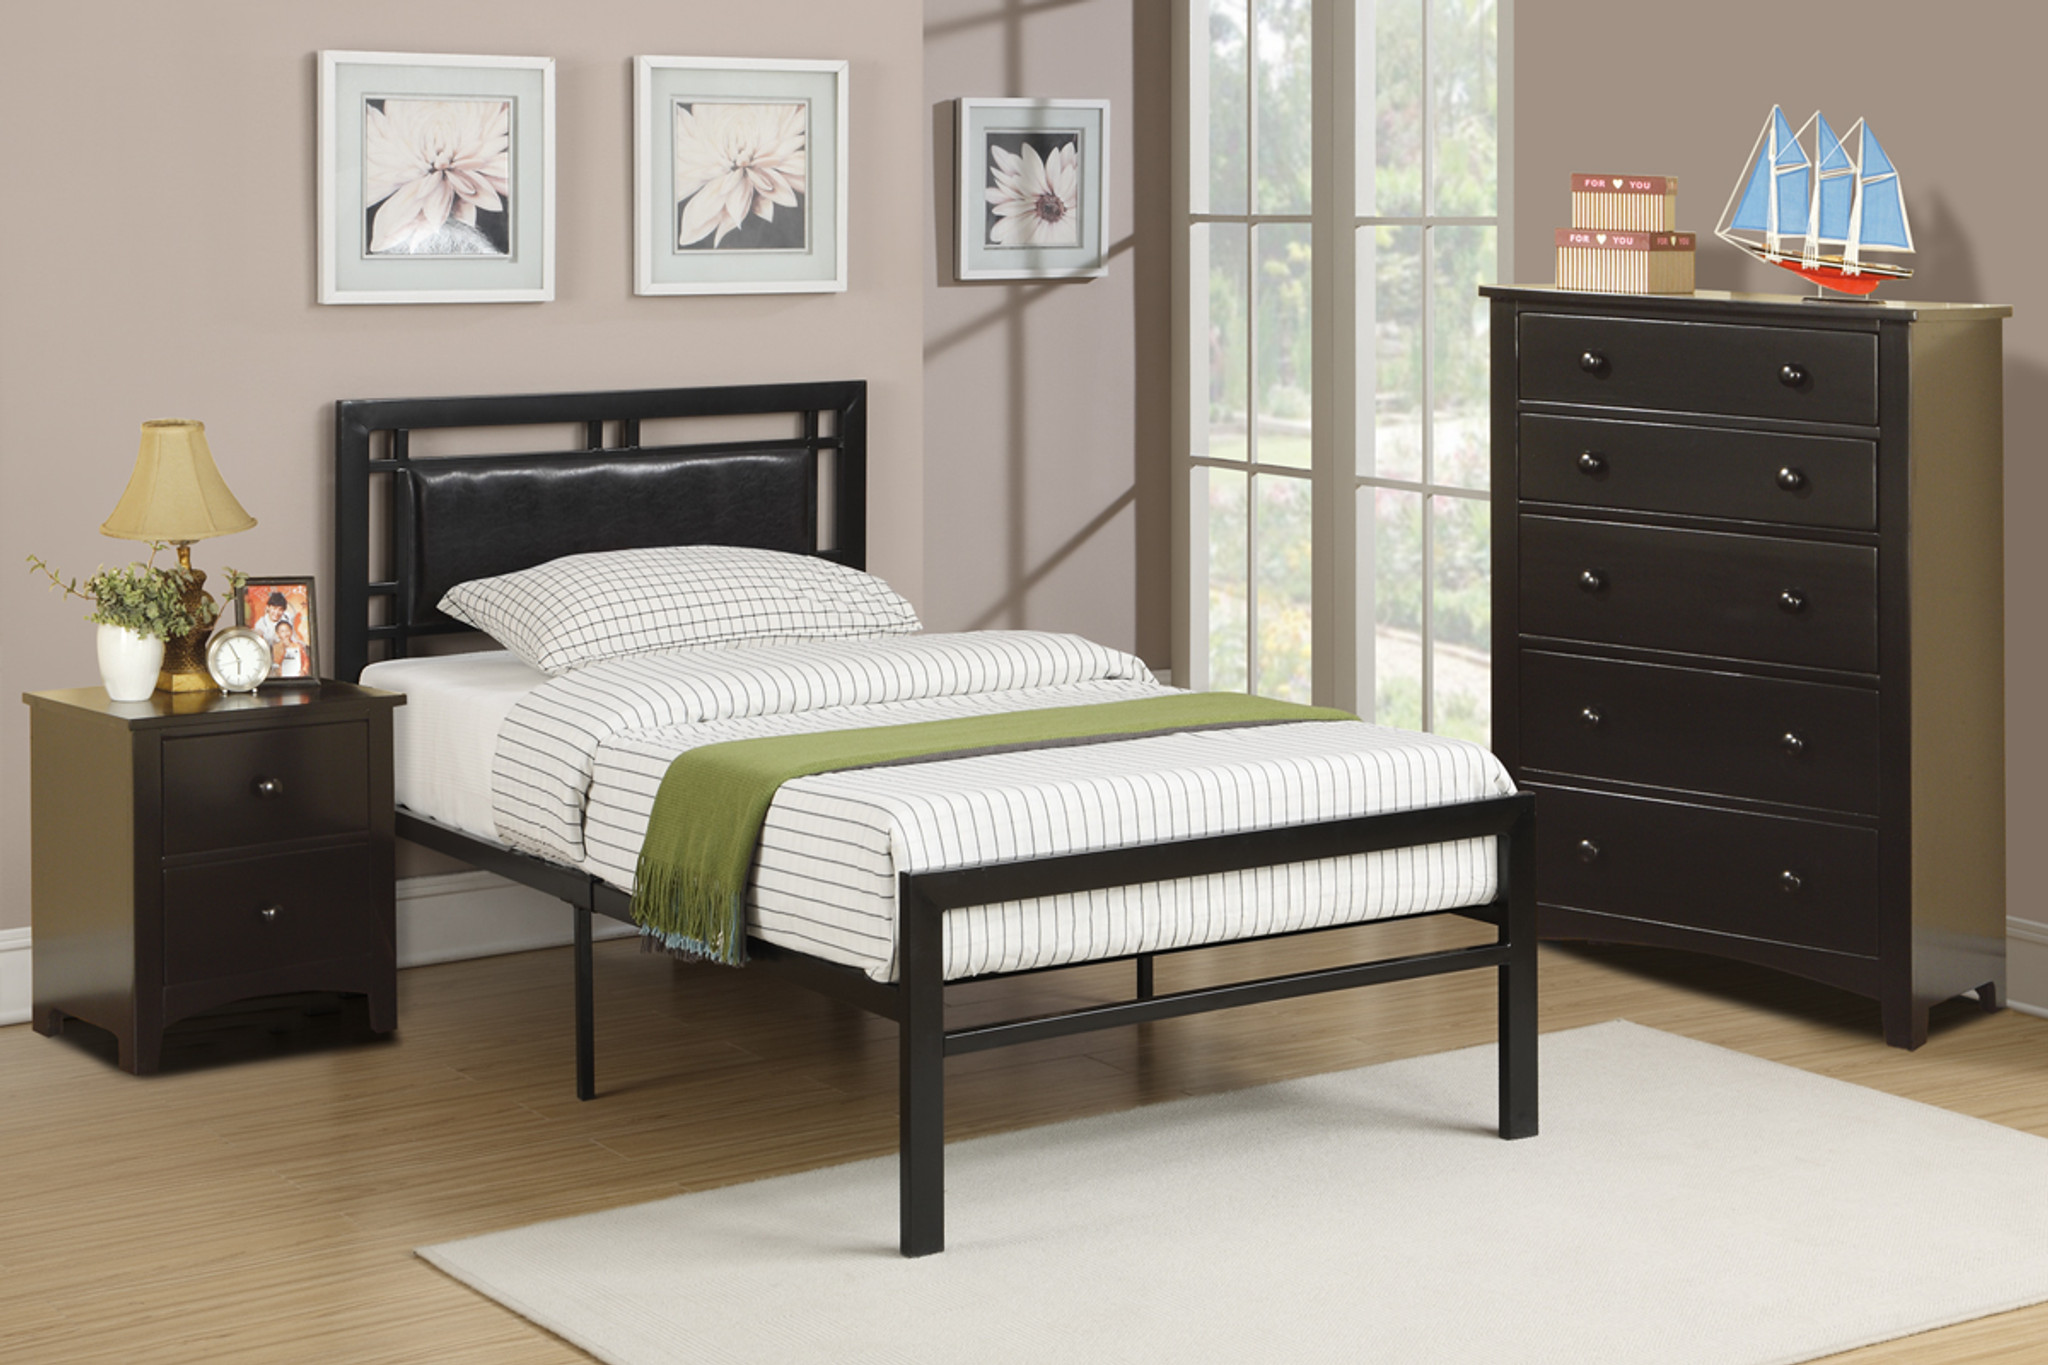 Black Bedroom Metal Platform With Slats Twin Full Bed